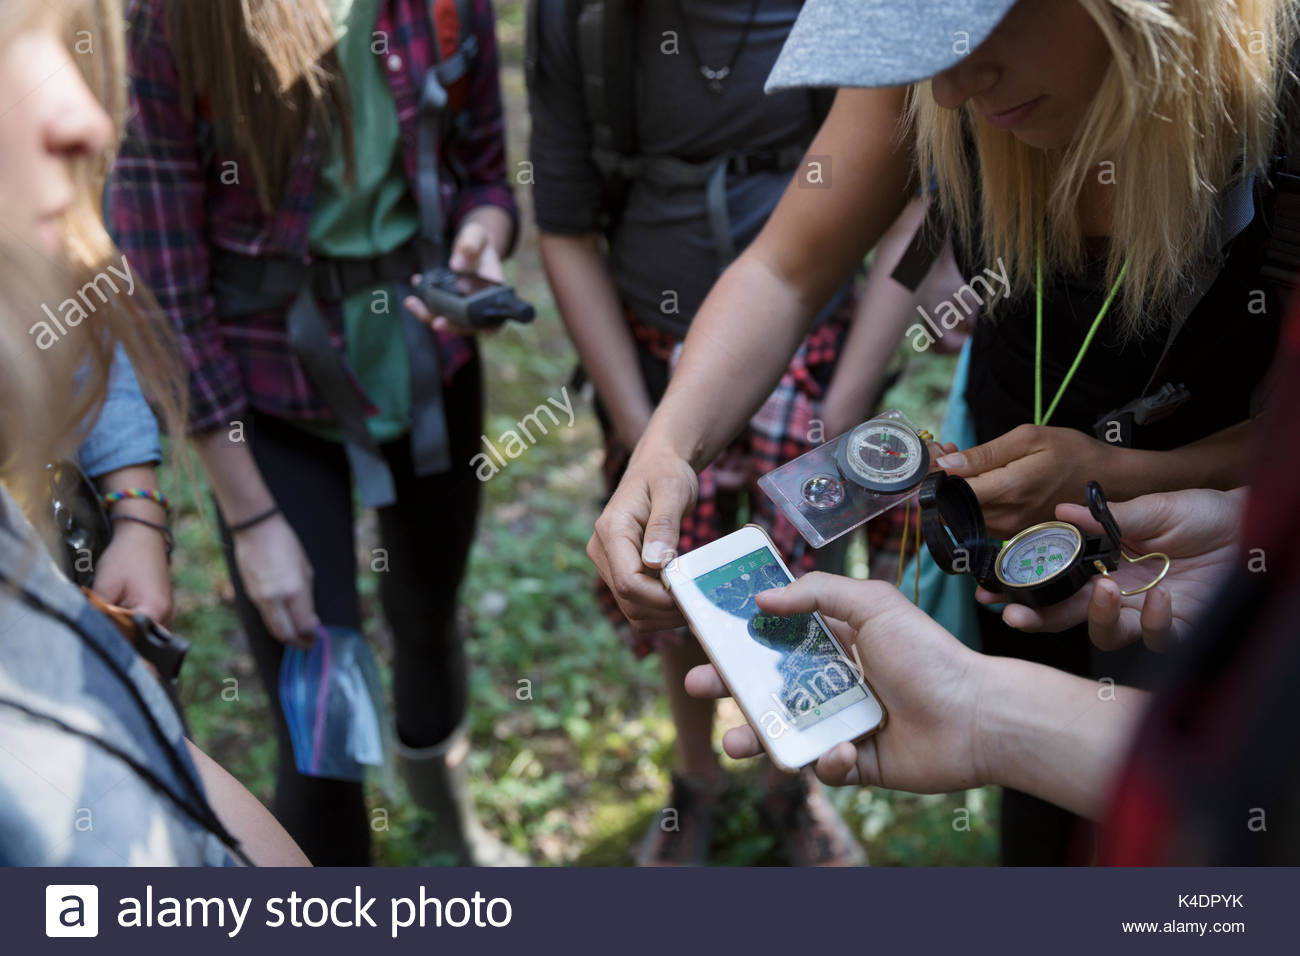 Female teacher and teenage outdoor school students using compass and smart phone gps, hiking - Stock Image